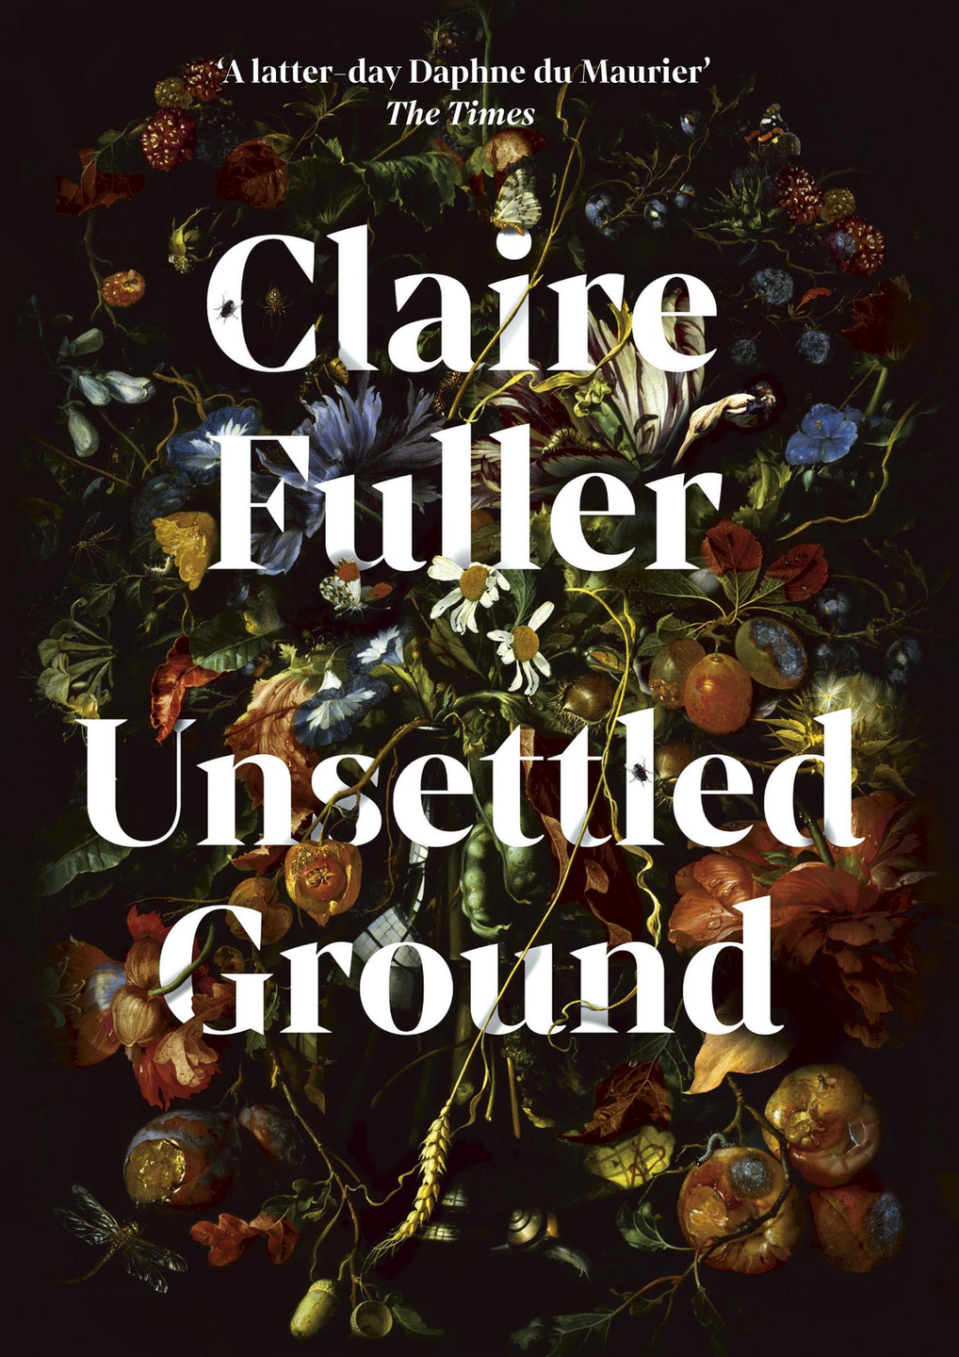 """<p>An isolated brother and sister must learn to fend for themselves after the death of their mother in this novel of resilience and hope, love and survival. <br><br>""""Unsettled Ground by Claire Fuller tells the tale of 50 year old<br>twins who still live with their mum and what happens to them when she dies unexpectedly."""" - Sarah-Jane Mee</p><p><a class=""""link rapid-noclick-resp"""" href=""""https://www.amazon.co.uk/Unsettled-Ground-Claire-Fuller/dp/0241457440/ref=sr_1_1?dchild=1&keywords=Unsettled+Ground%2C+Claire+Fuller&qid=1615458692&sr=8-1&tag=hearstuk-yahoo-21&ascsubtag=%5Bartid%7C1927.g.35797924%5Bsrc%7Cyahoo-uk"""" rel=""""nofollow noopener"""" target=""""_blank"""" data-ylk=""""slk:SHOP NOW"""">SHOP NOW</a></p>"""